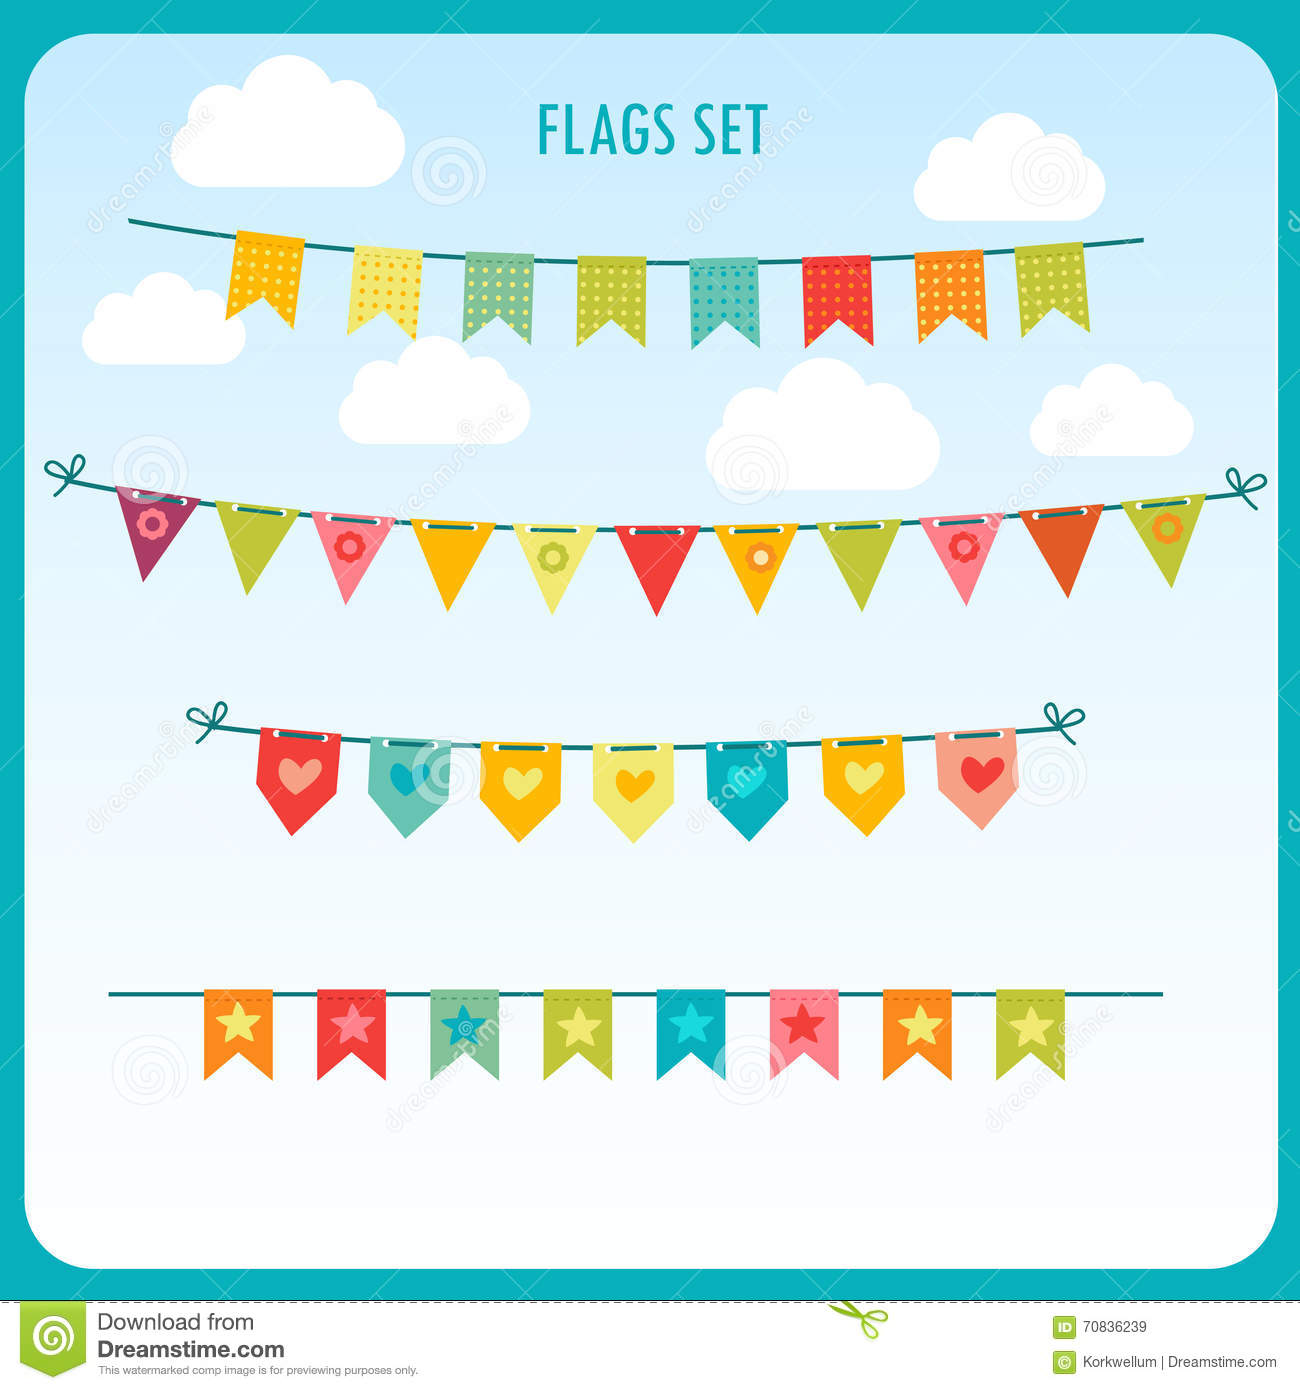 Garlands Of Festive Flags Against The Bright Sky. Vector Holiday.